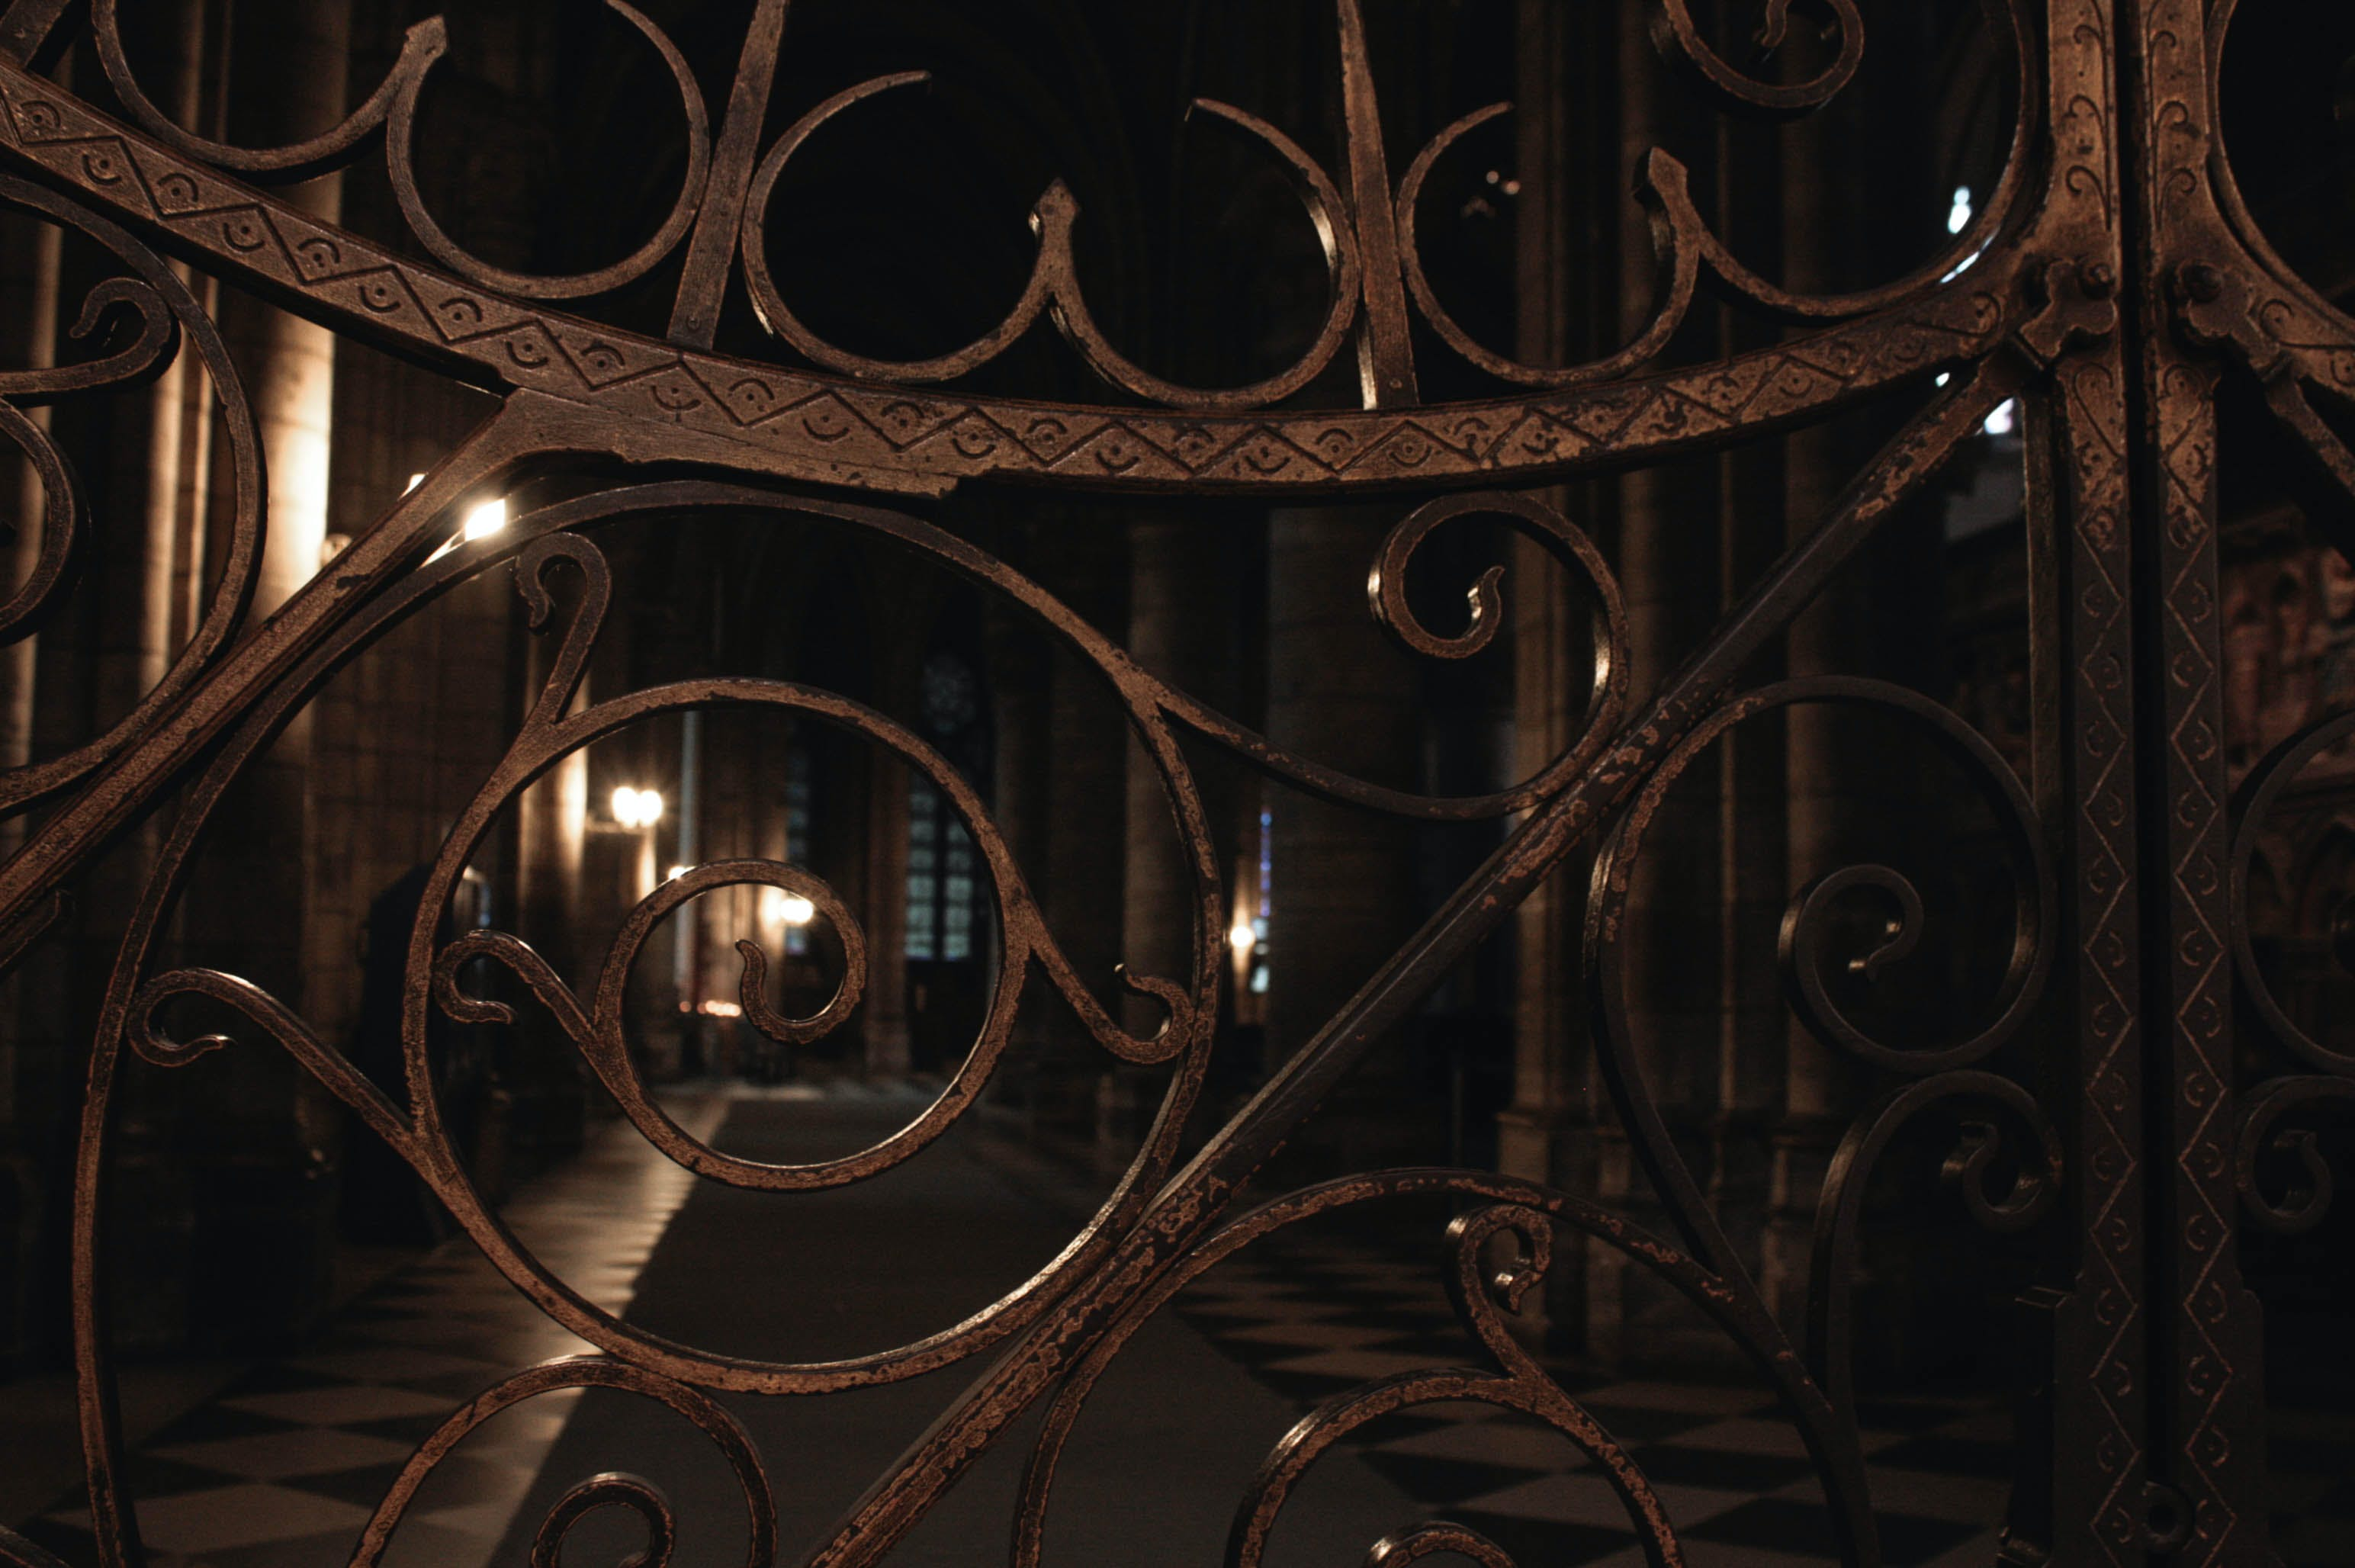 Free stock photo of church, forging, gate, gold